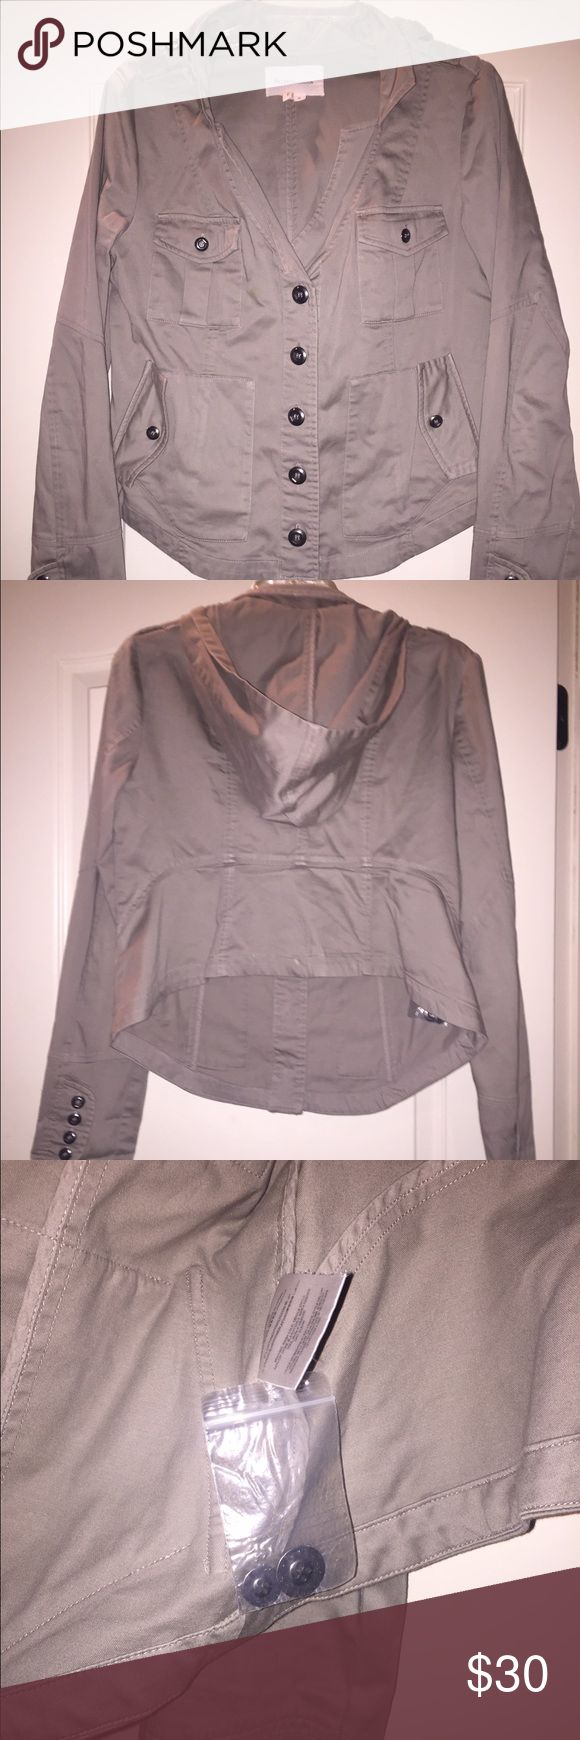 BCBGeneration Military Style Jacket w/hood Khaki colored military style jacket with hoodie that can be hidden in a zipper pocket.  The retail tag is missing, but the tag with the replacement buttons is attached. BCBGeneration Jackets & Coats Utility Jackets